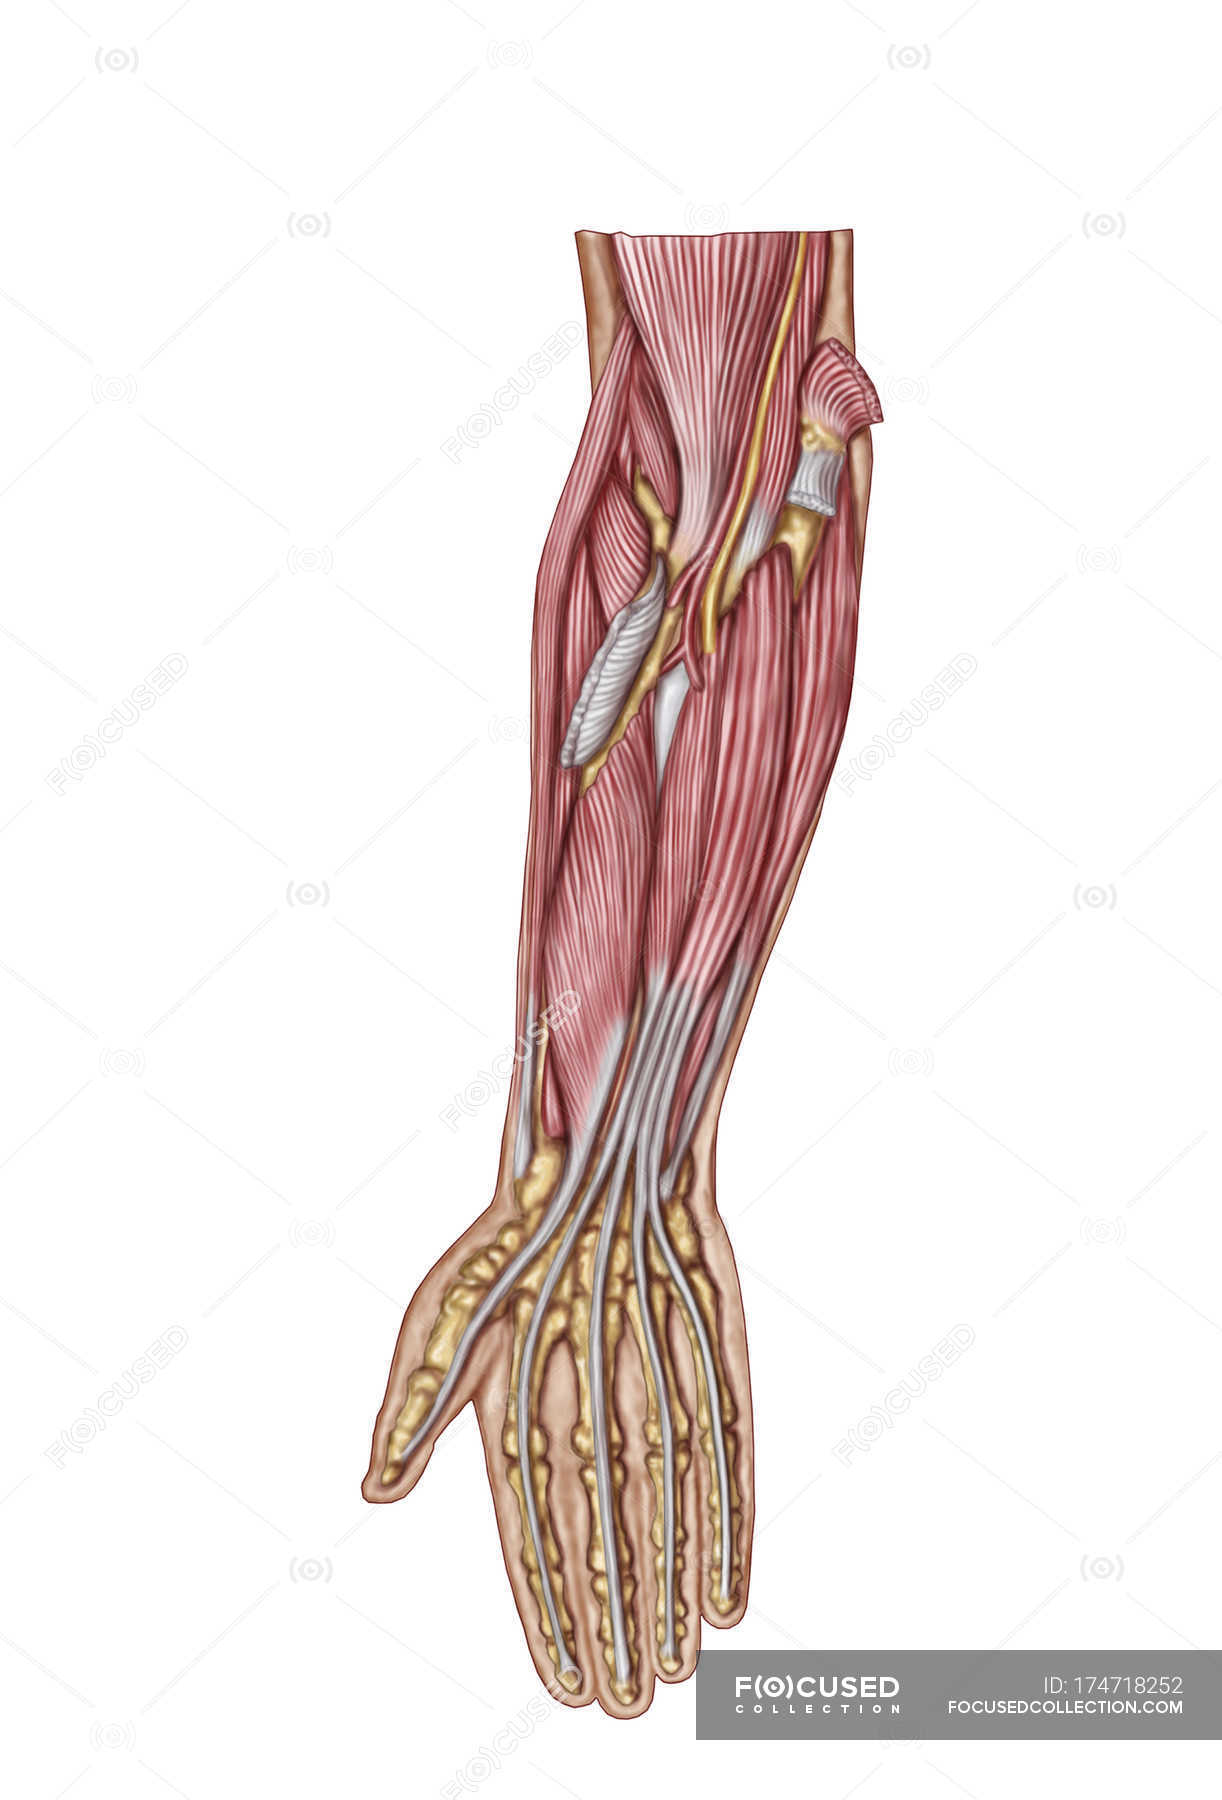 Anatomy of human forearm muscles — Stock Photo | #174718252